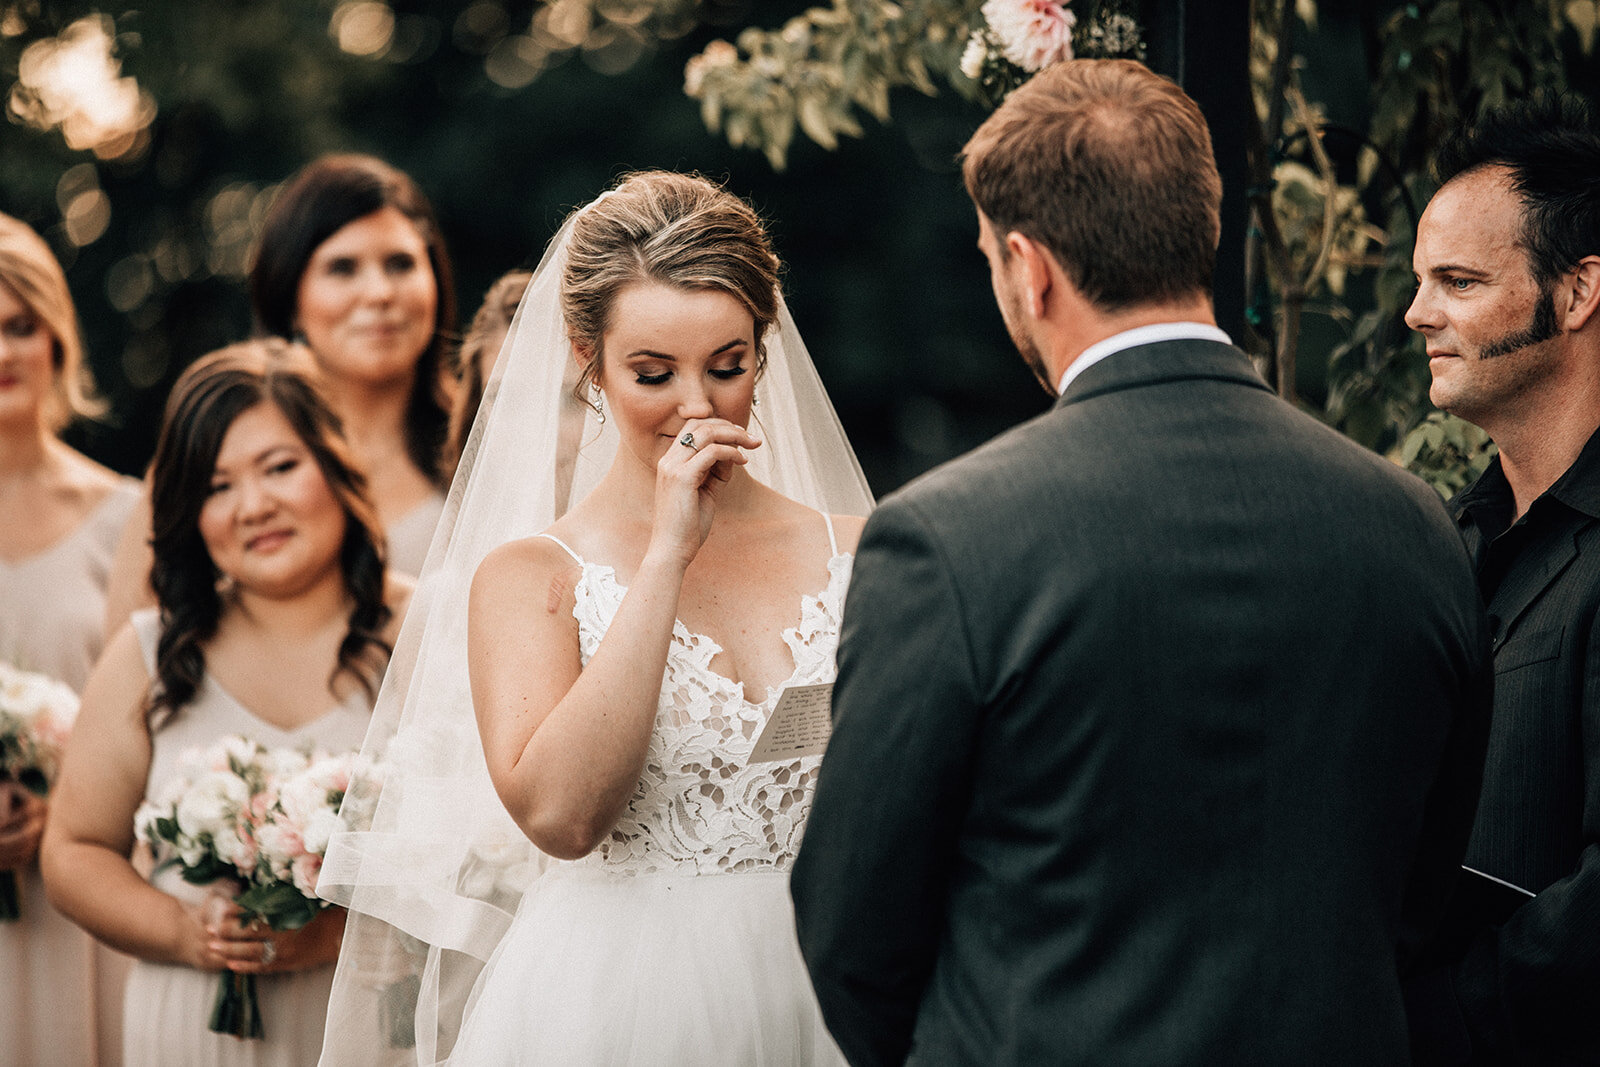 Bridalbliss.com | Bend Wedding | Oregon Event Planning and Design | Bethany Small Photography